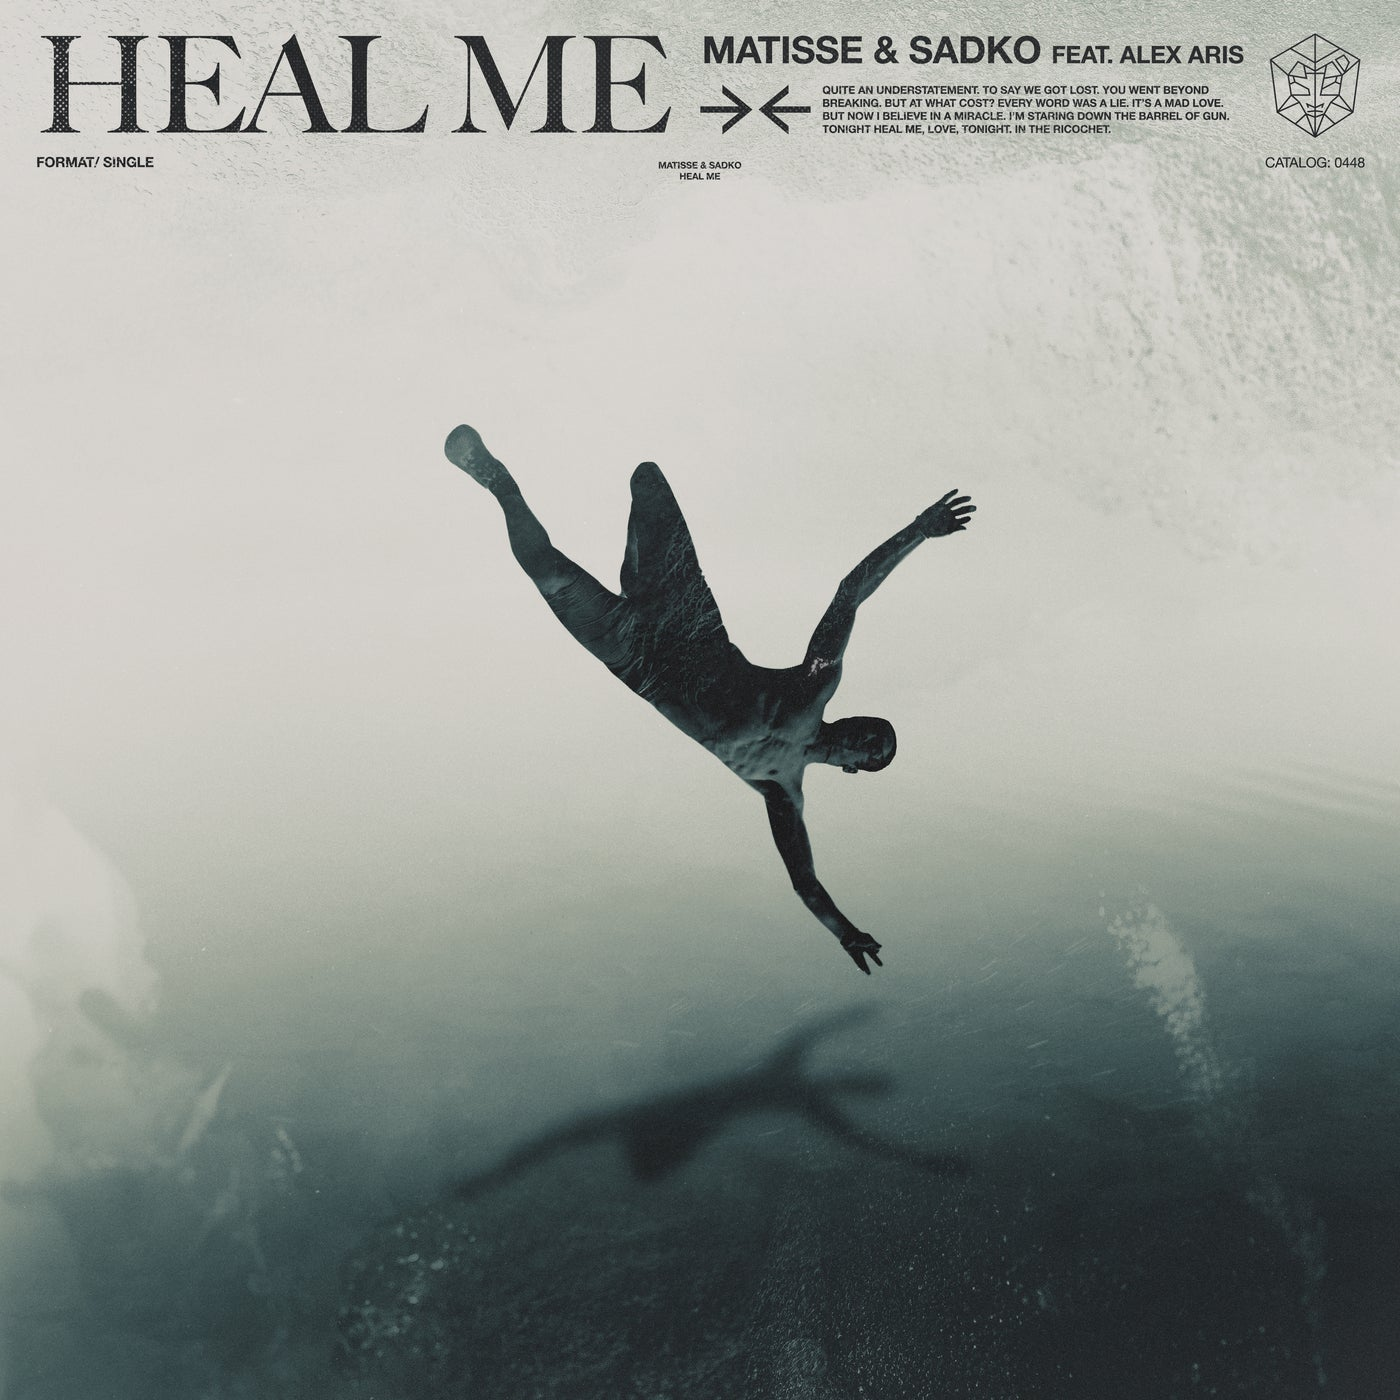 Heal Me (Extended Mix)